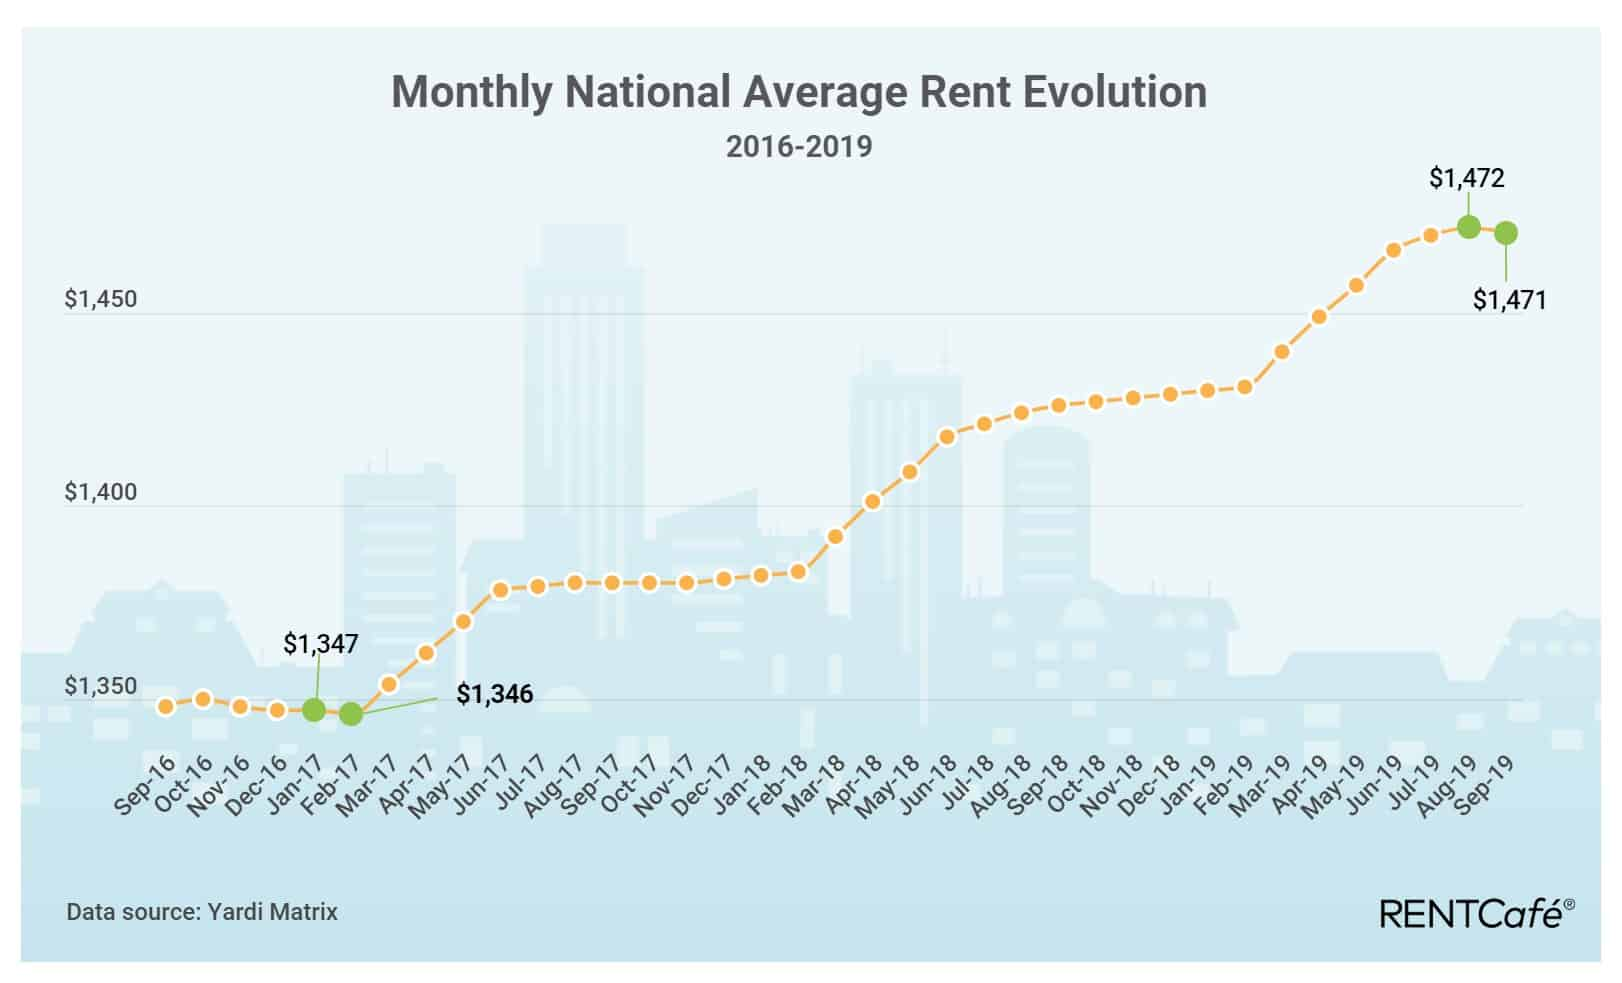 Monthly average rents in US